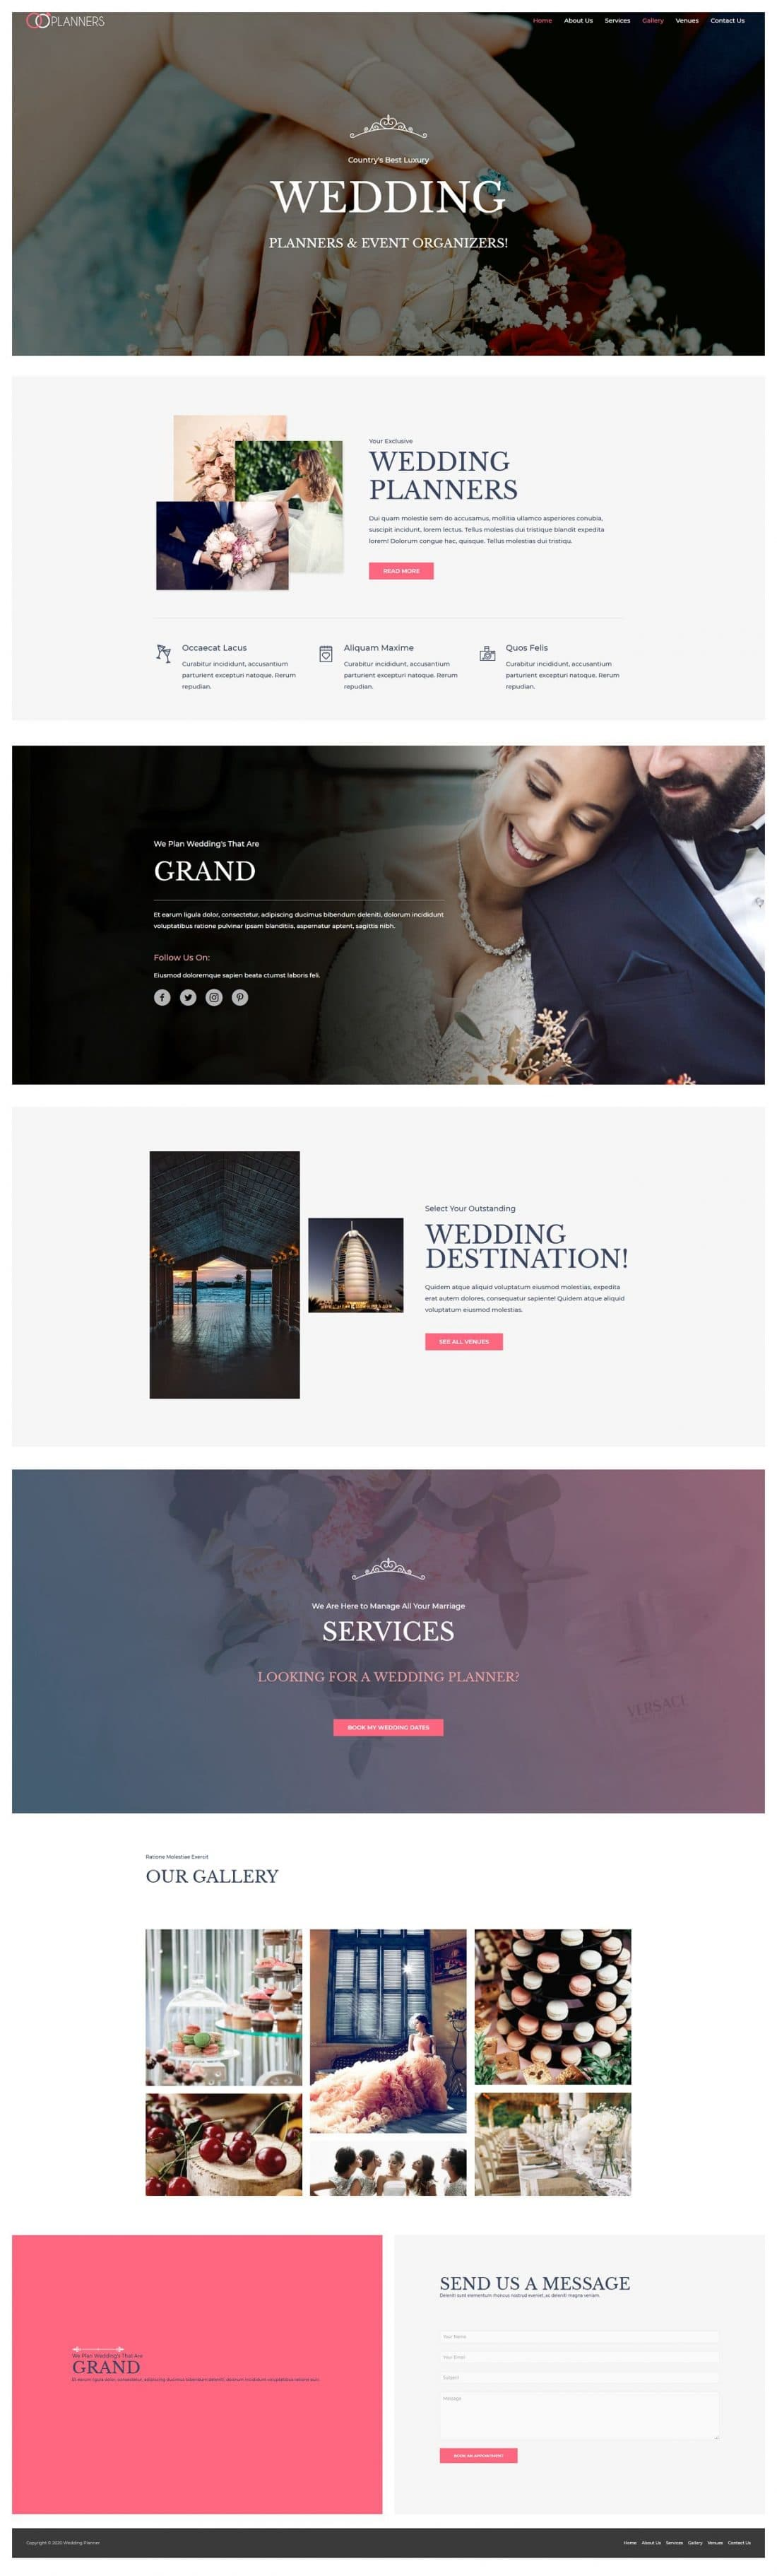 Fagowi.com Website Design Templates For Wedding Planner - Home Page Image